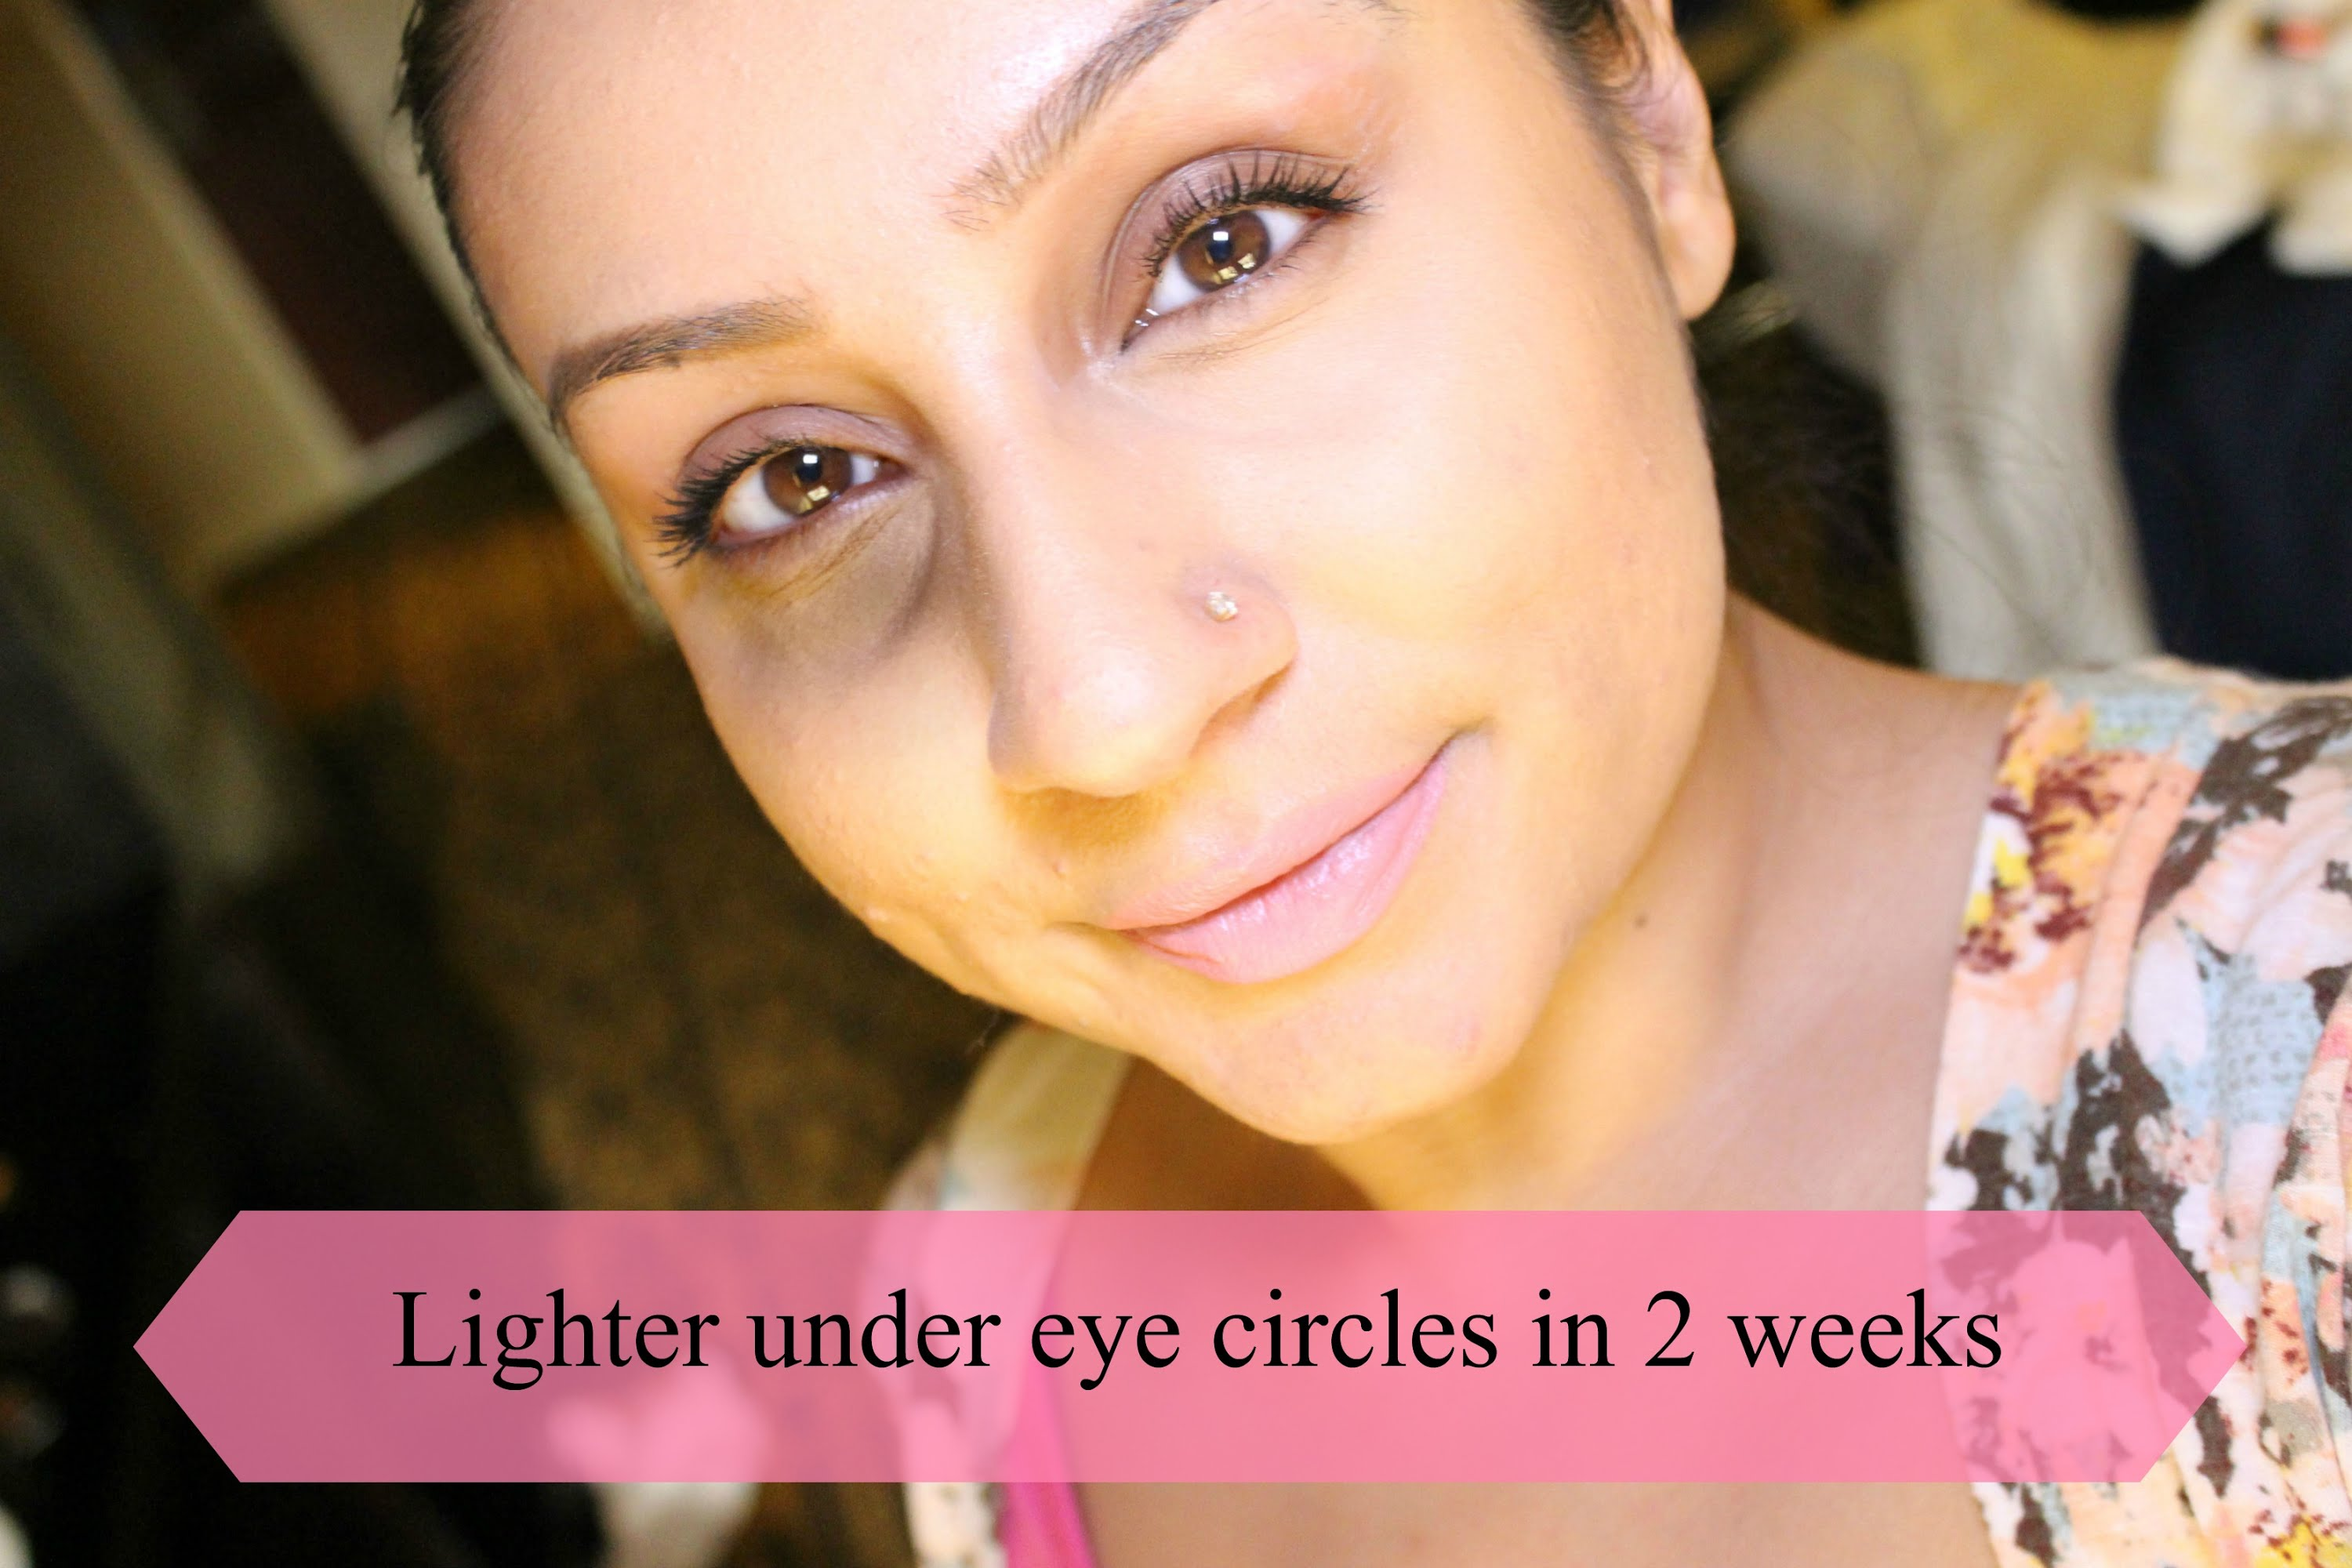 How To Lighten dark circles under eyes in 2 weeks | Makeup With Raji